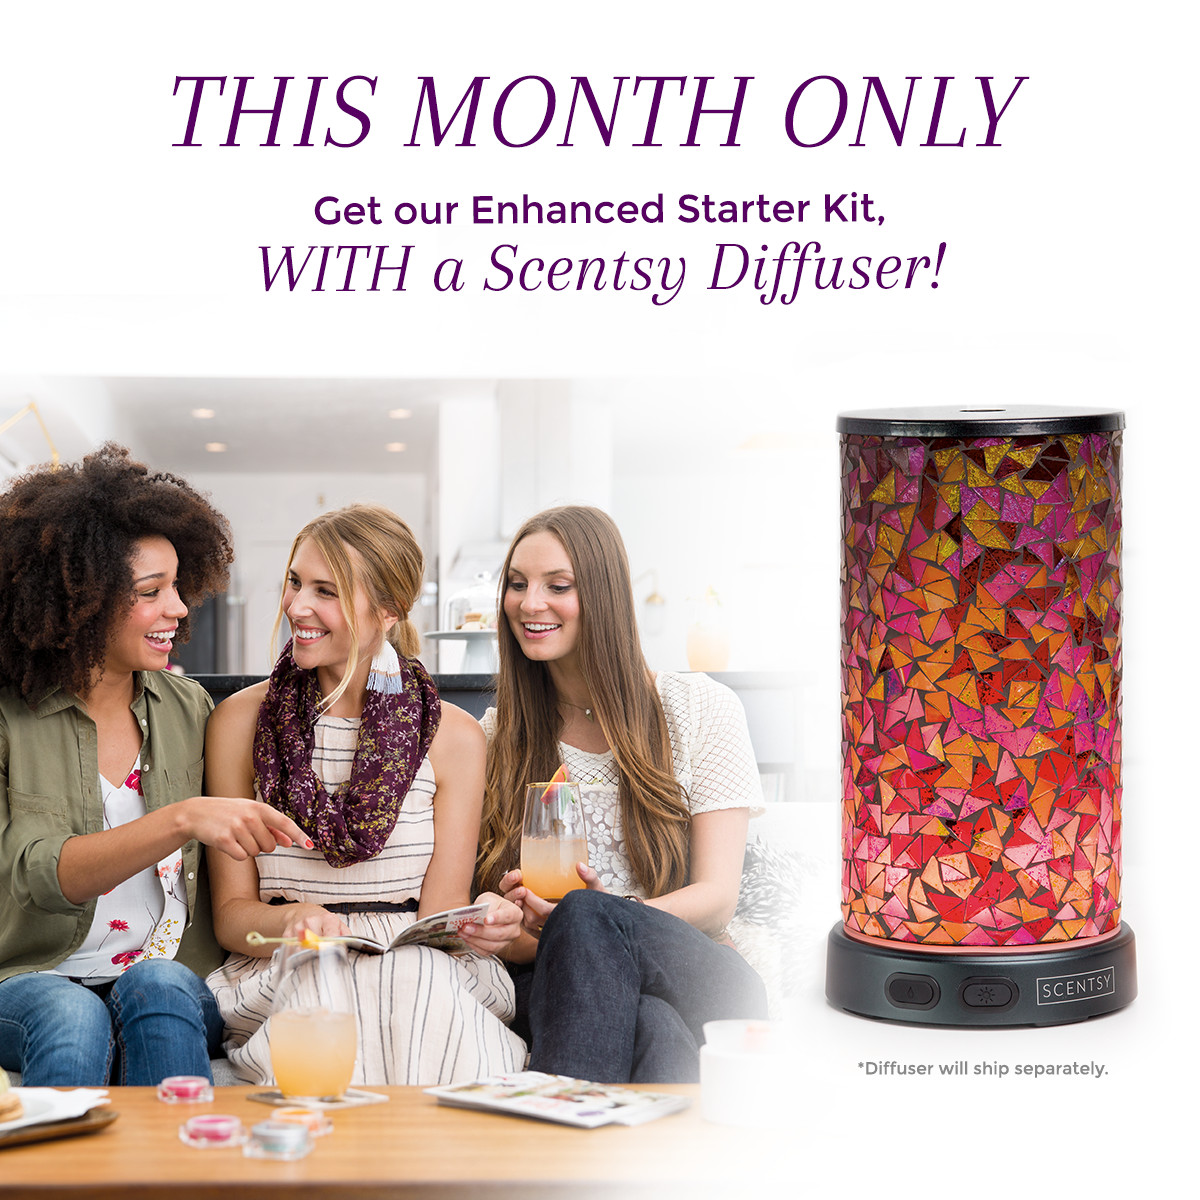 Scentsy August join special